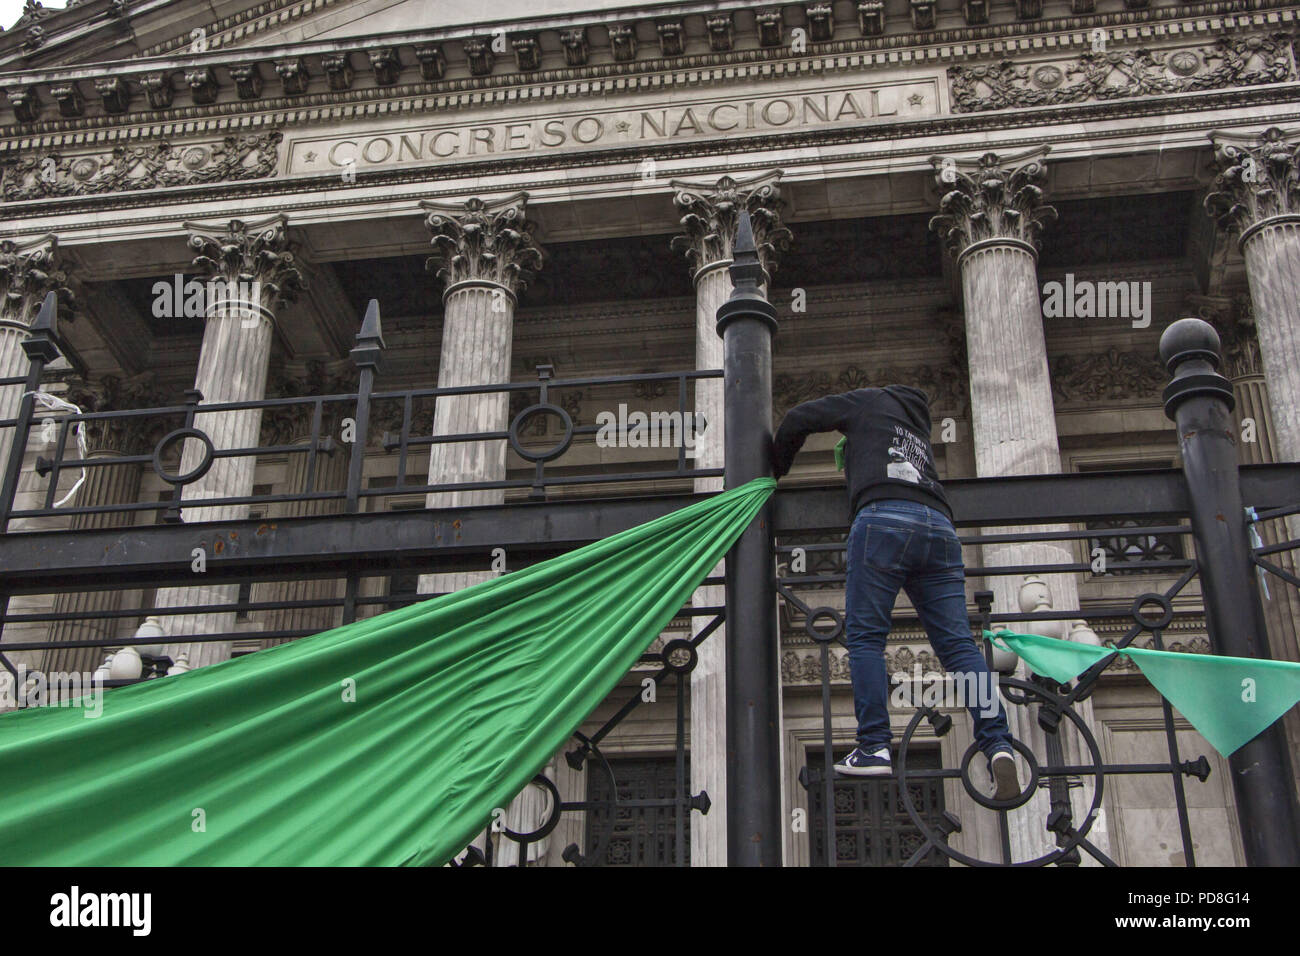 Buenos Aires, Federal Capital, Argentina. 5th Aug, 2018. After having passed through the Chamber of Deputies, where he obtained the average sanction, the project for the legalization of abortion arrived at the Senate for the first time in history.As happened in the Deputies debate and that will be repeated in the Senate, the green wing as the celestial one will approach to manifest itself. Officials of the City Government confirmed that, again, they will divide the Plaza Congreso into two separate columns with a protection fence. This will prevent both sides from crossing and generating in Stock Photo